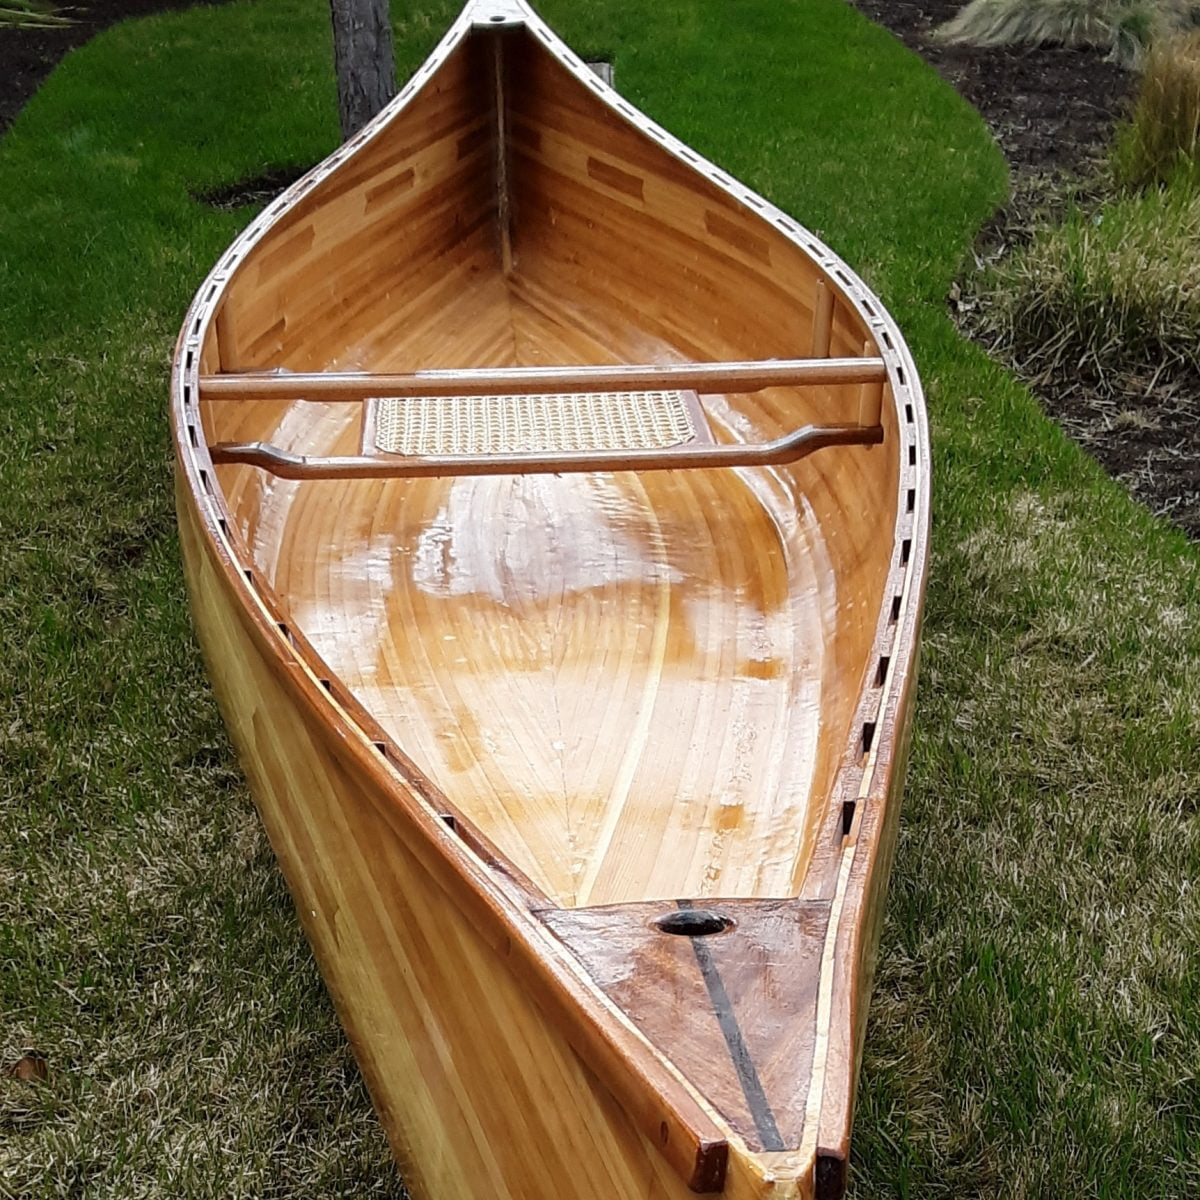 Anglers Pack – A 13 Foot Cedar Strip Canoe – Built by Glenn Town